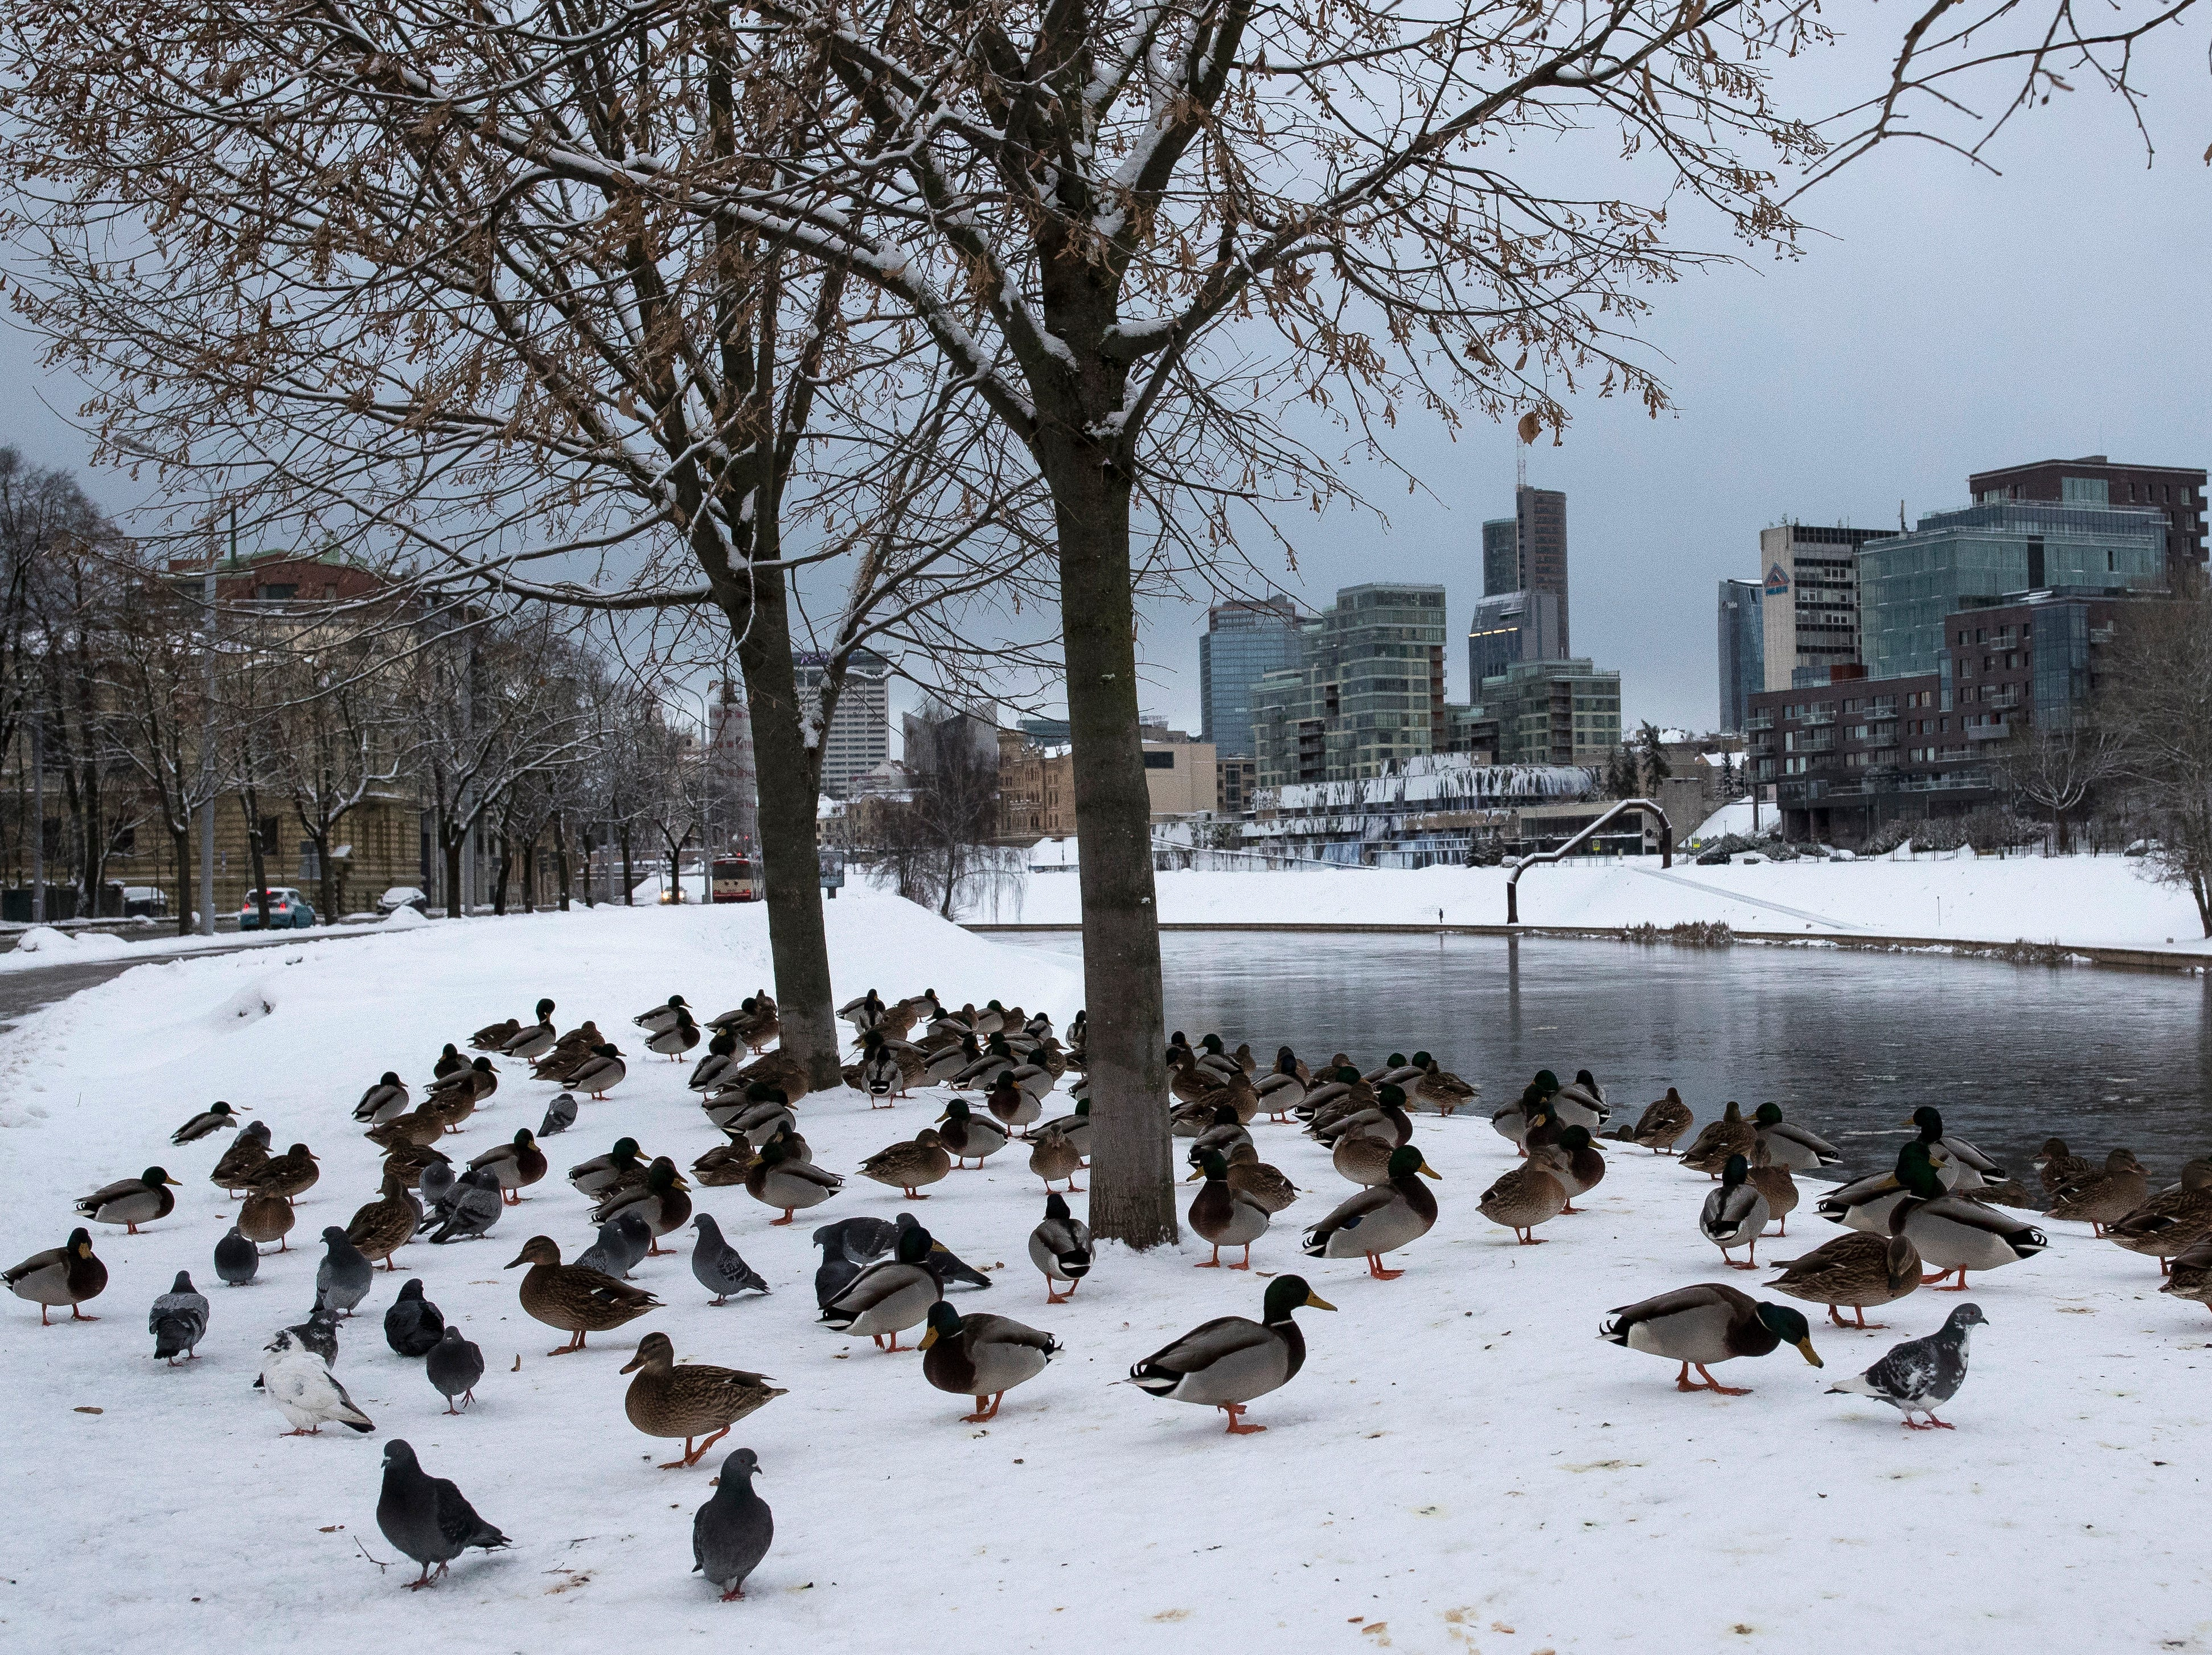 Ducks sit on the snow-covered banks of the Neris river in Vilnius, Lithuania on Saturday, Jan. 5, 2019.